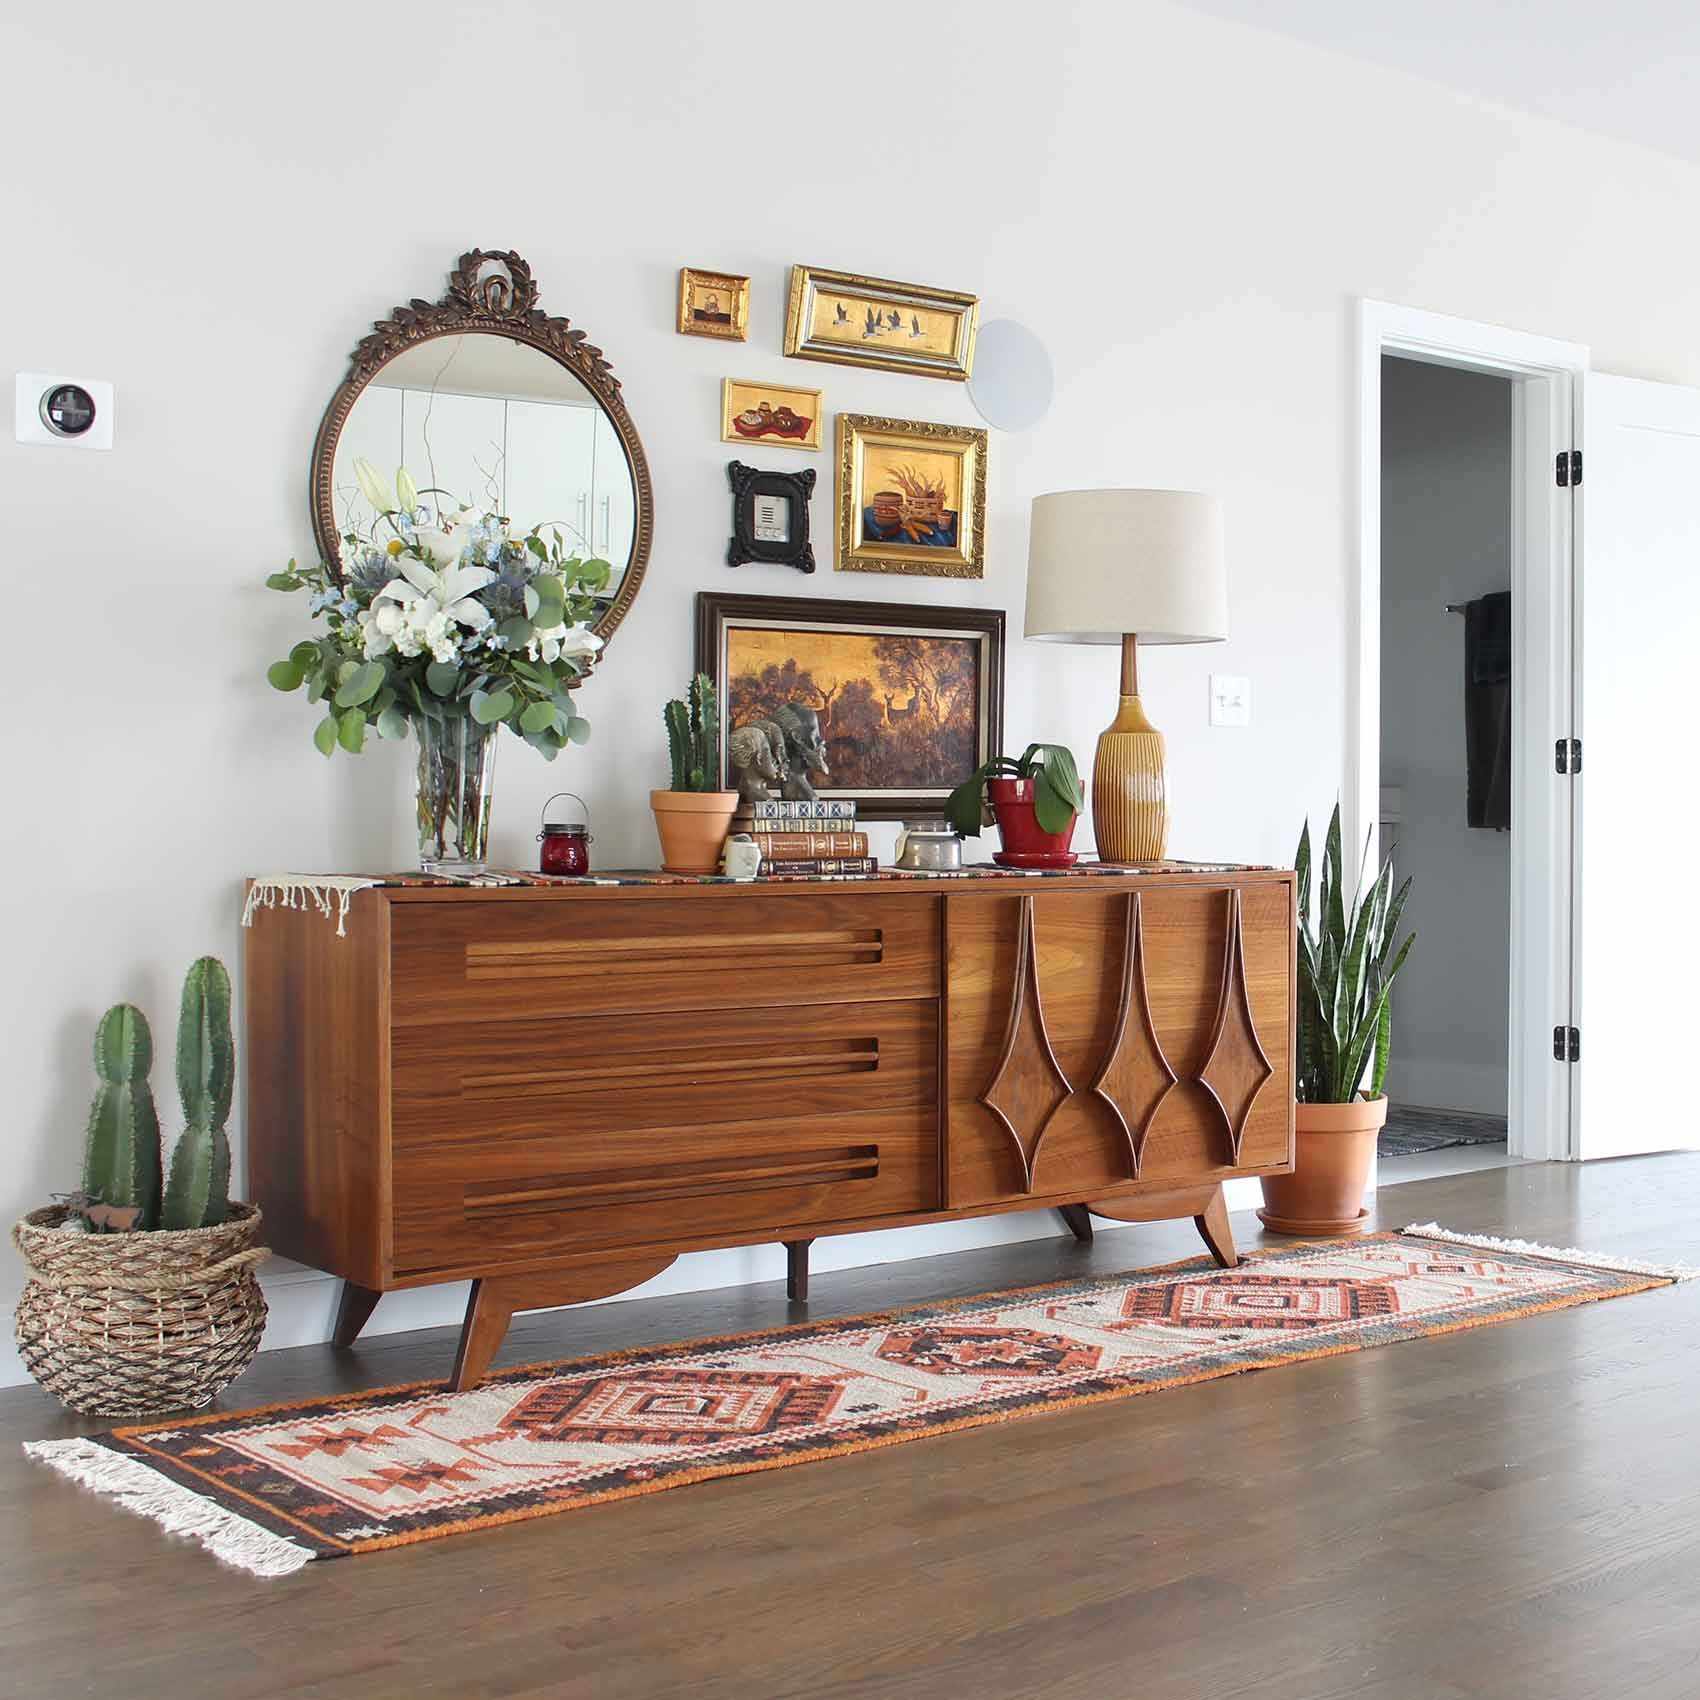 Reformar Muebles Here 39s Why Buying From These Mid Century Luxury Brands Is